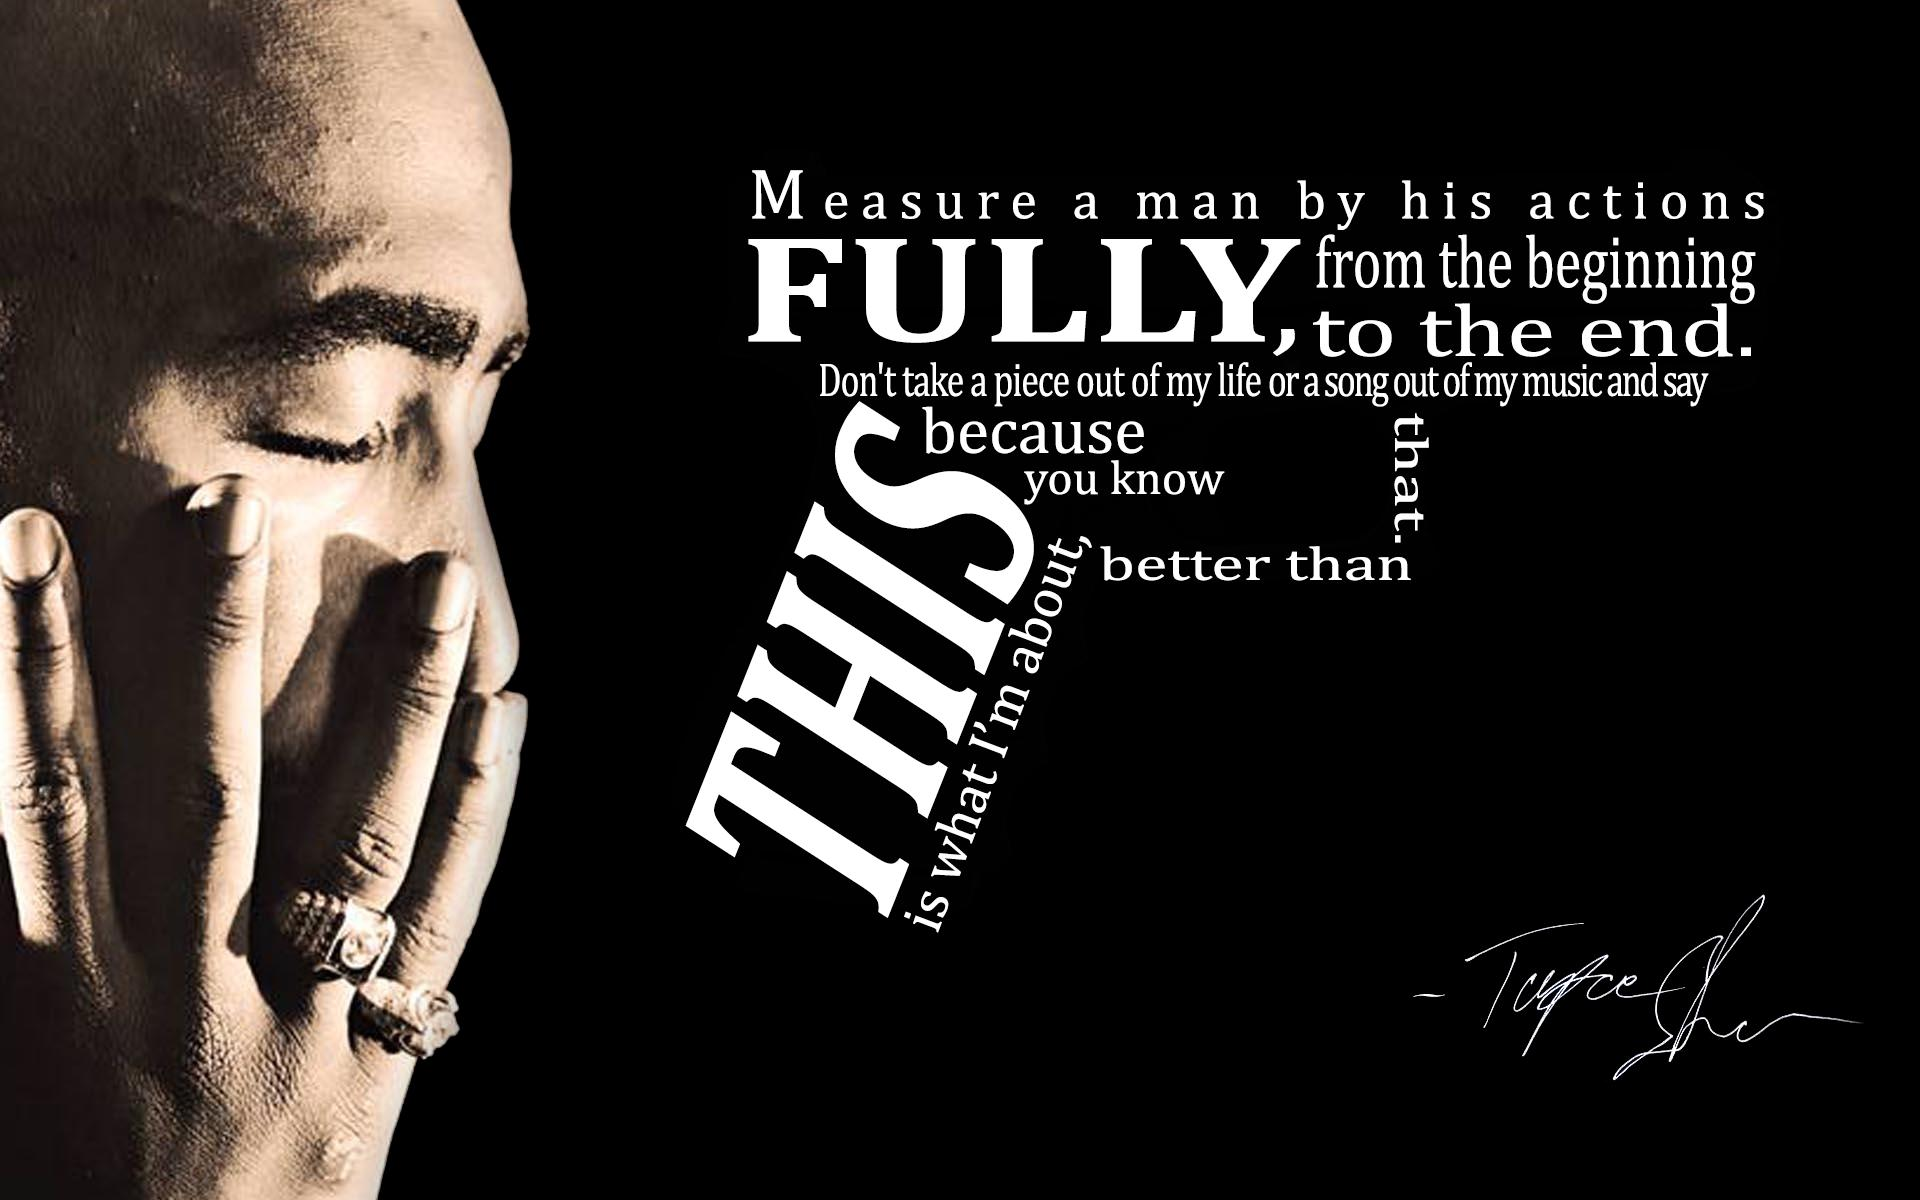 Love Juice Wallpaper : Tupac rap gangsta text quotes d wallpaper 1920x1200 ...